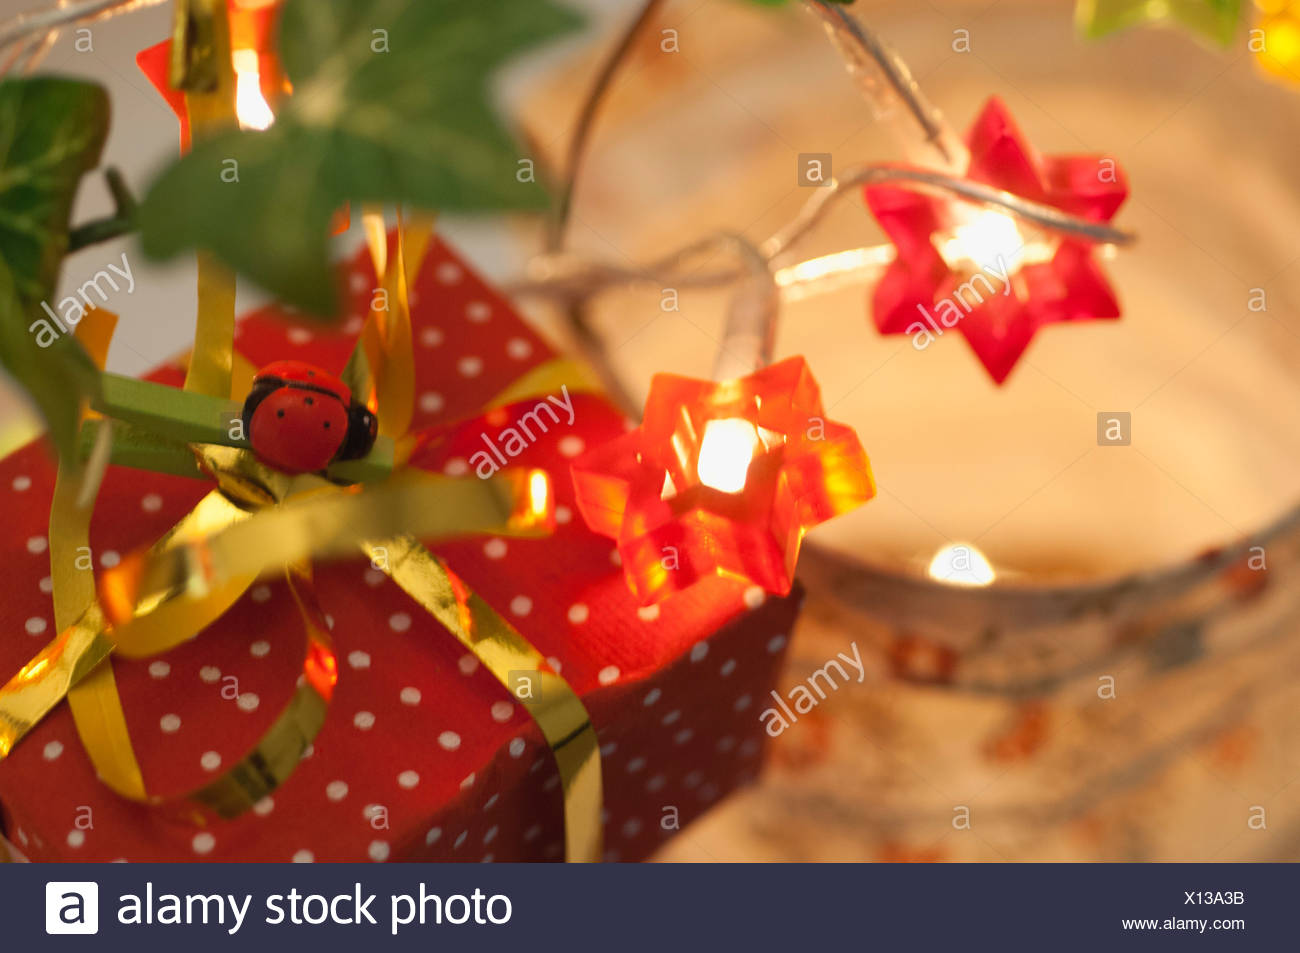 Festively wrapped Christmas present - Stock Image